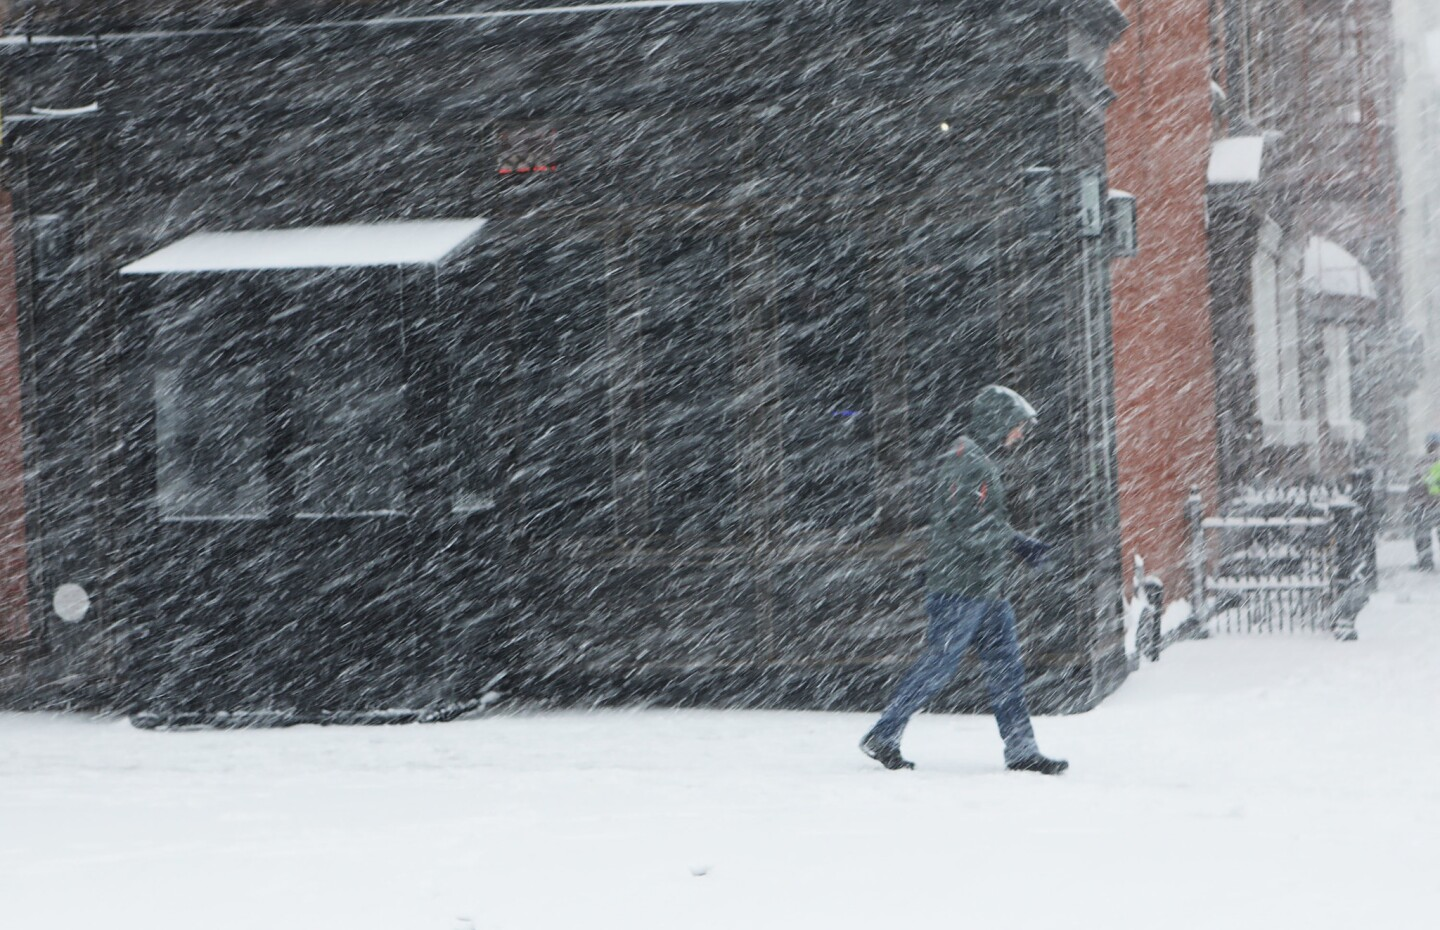 Major snowstorm pounding East Coast